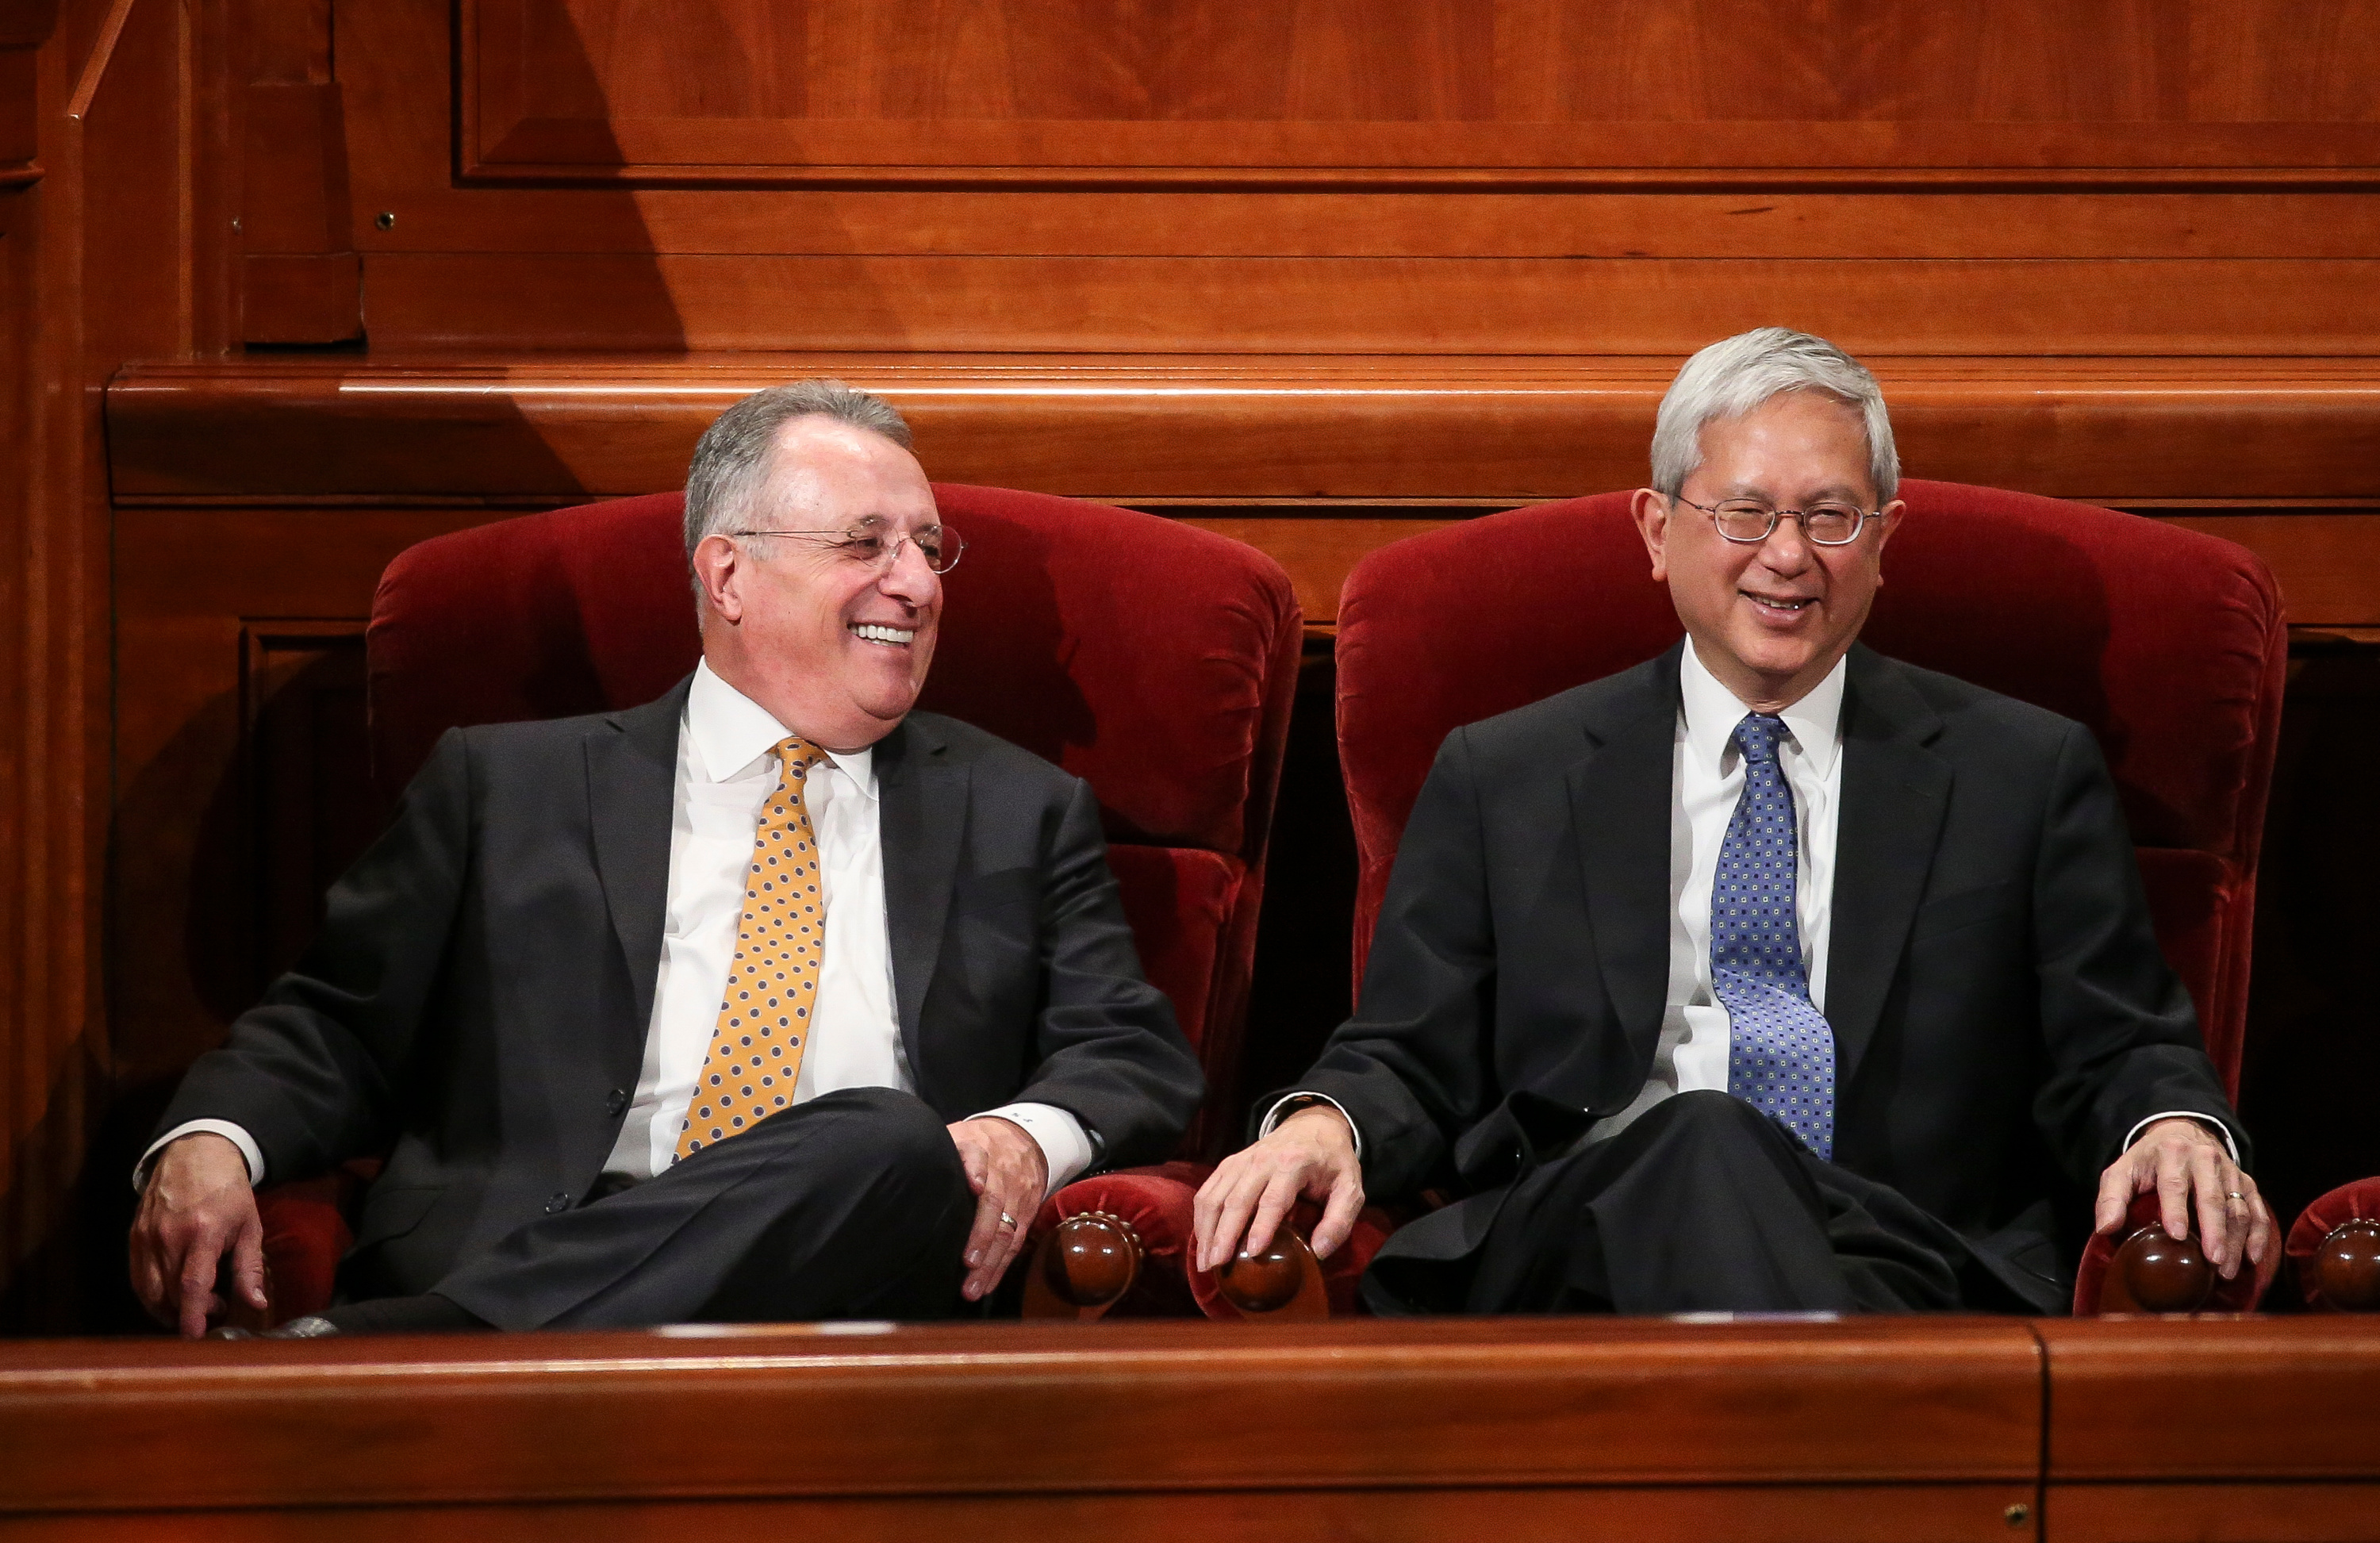 Elder Ulisses Soares and Elder Gerrit W. Gong of the Quorum of the Twelve Apostles chat before the start of the Saturday afternoon session of the 188th Annual General Conference of the LDS Church at the Conference Center in Salt Lake City on March 31, 2018.